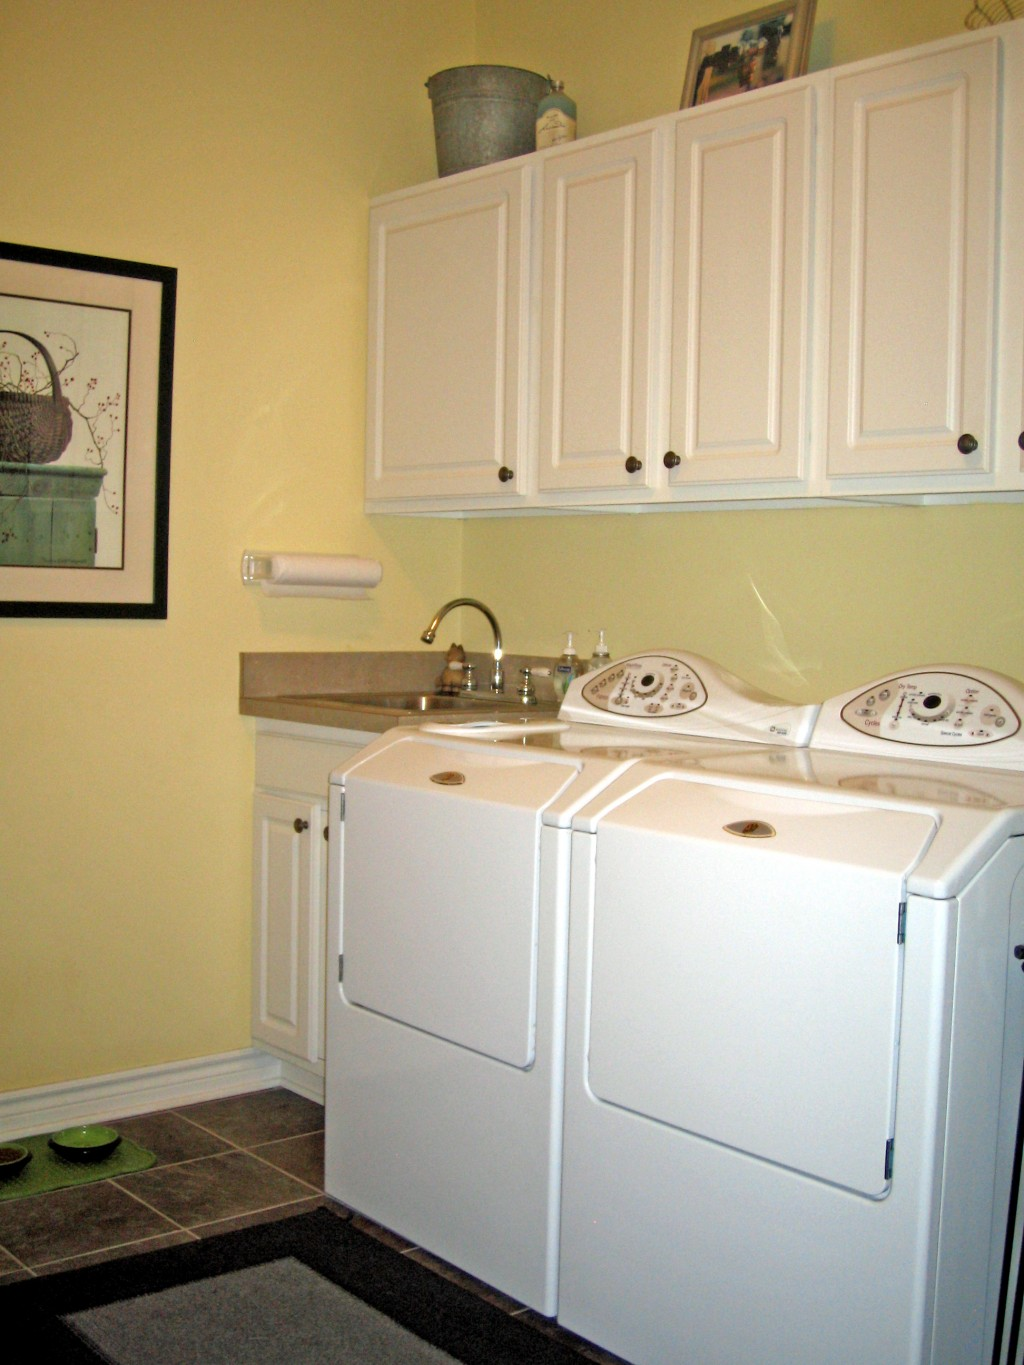 Dual purpose laundry room mudroom design hubpages Design a laundr room laout